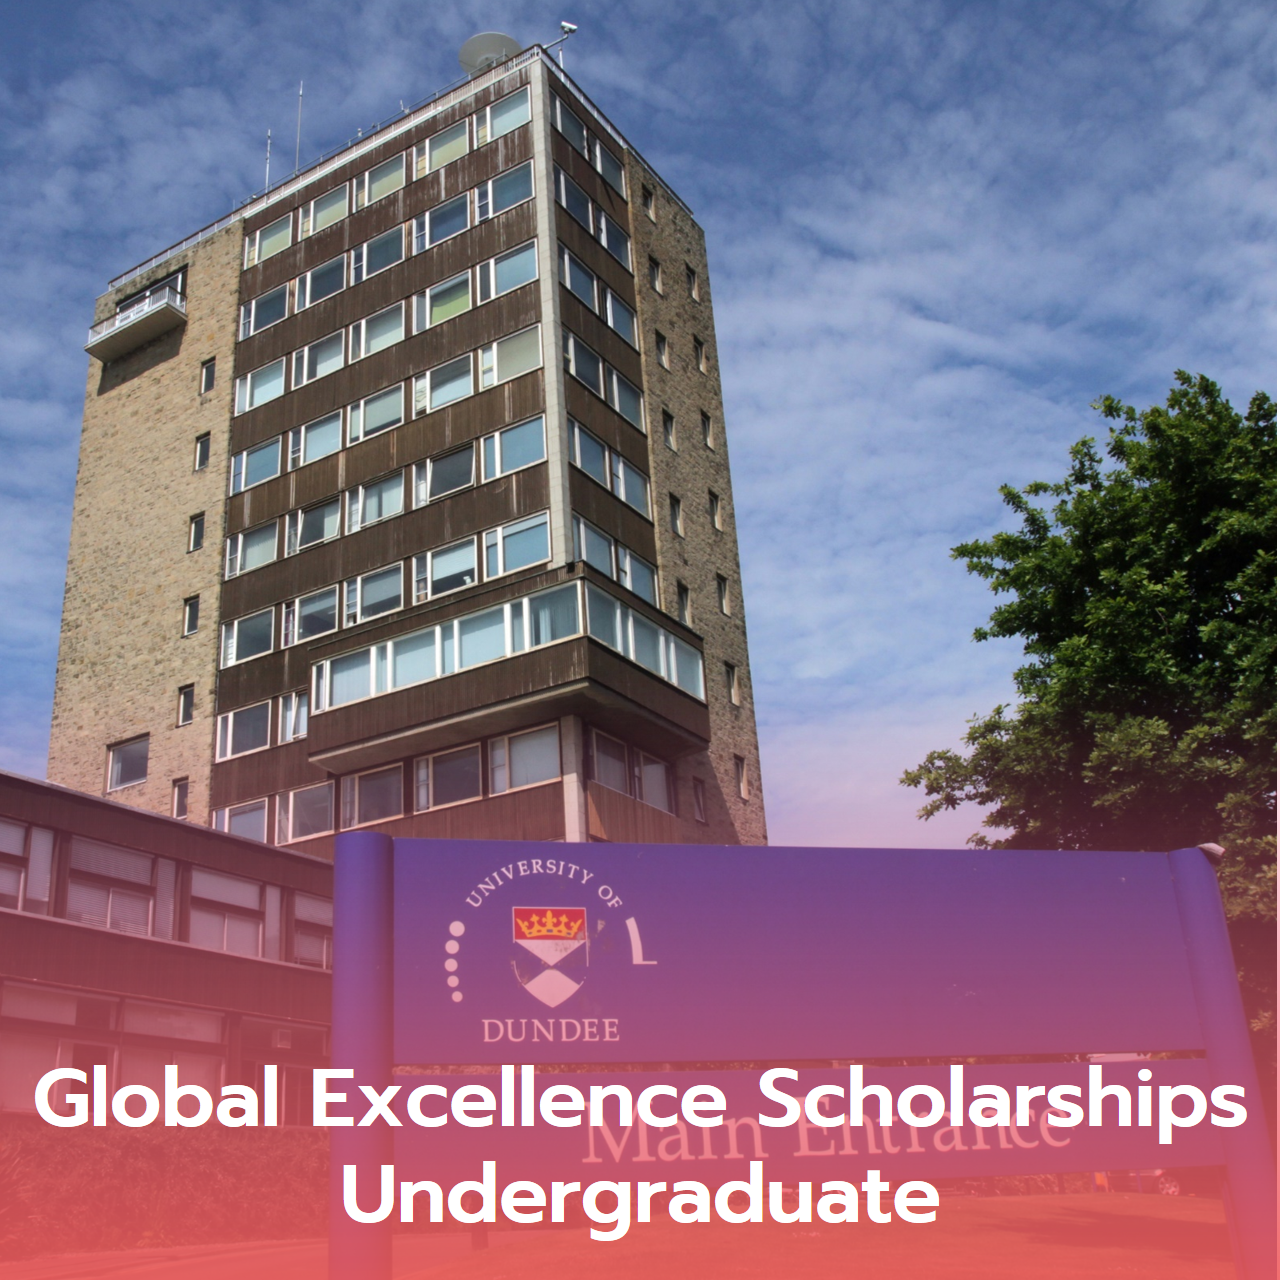 Global Excellence Scholarships Undergraduate